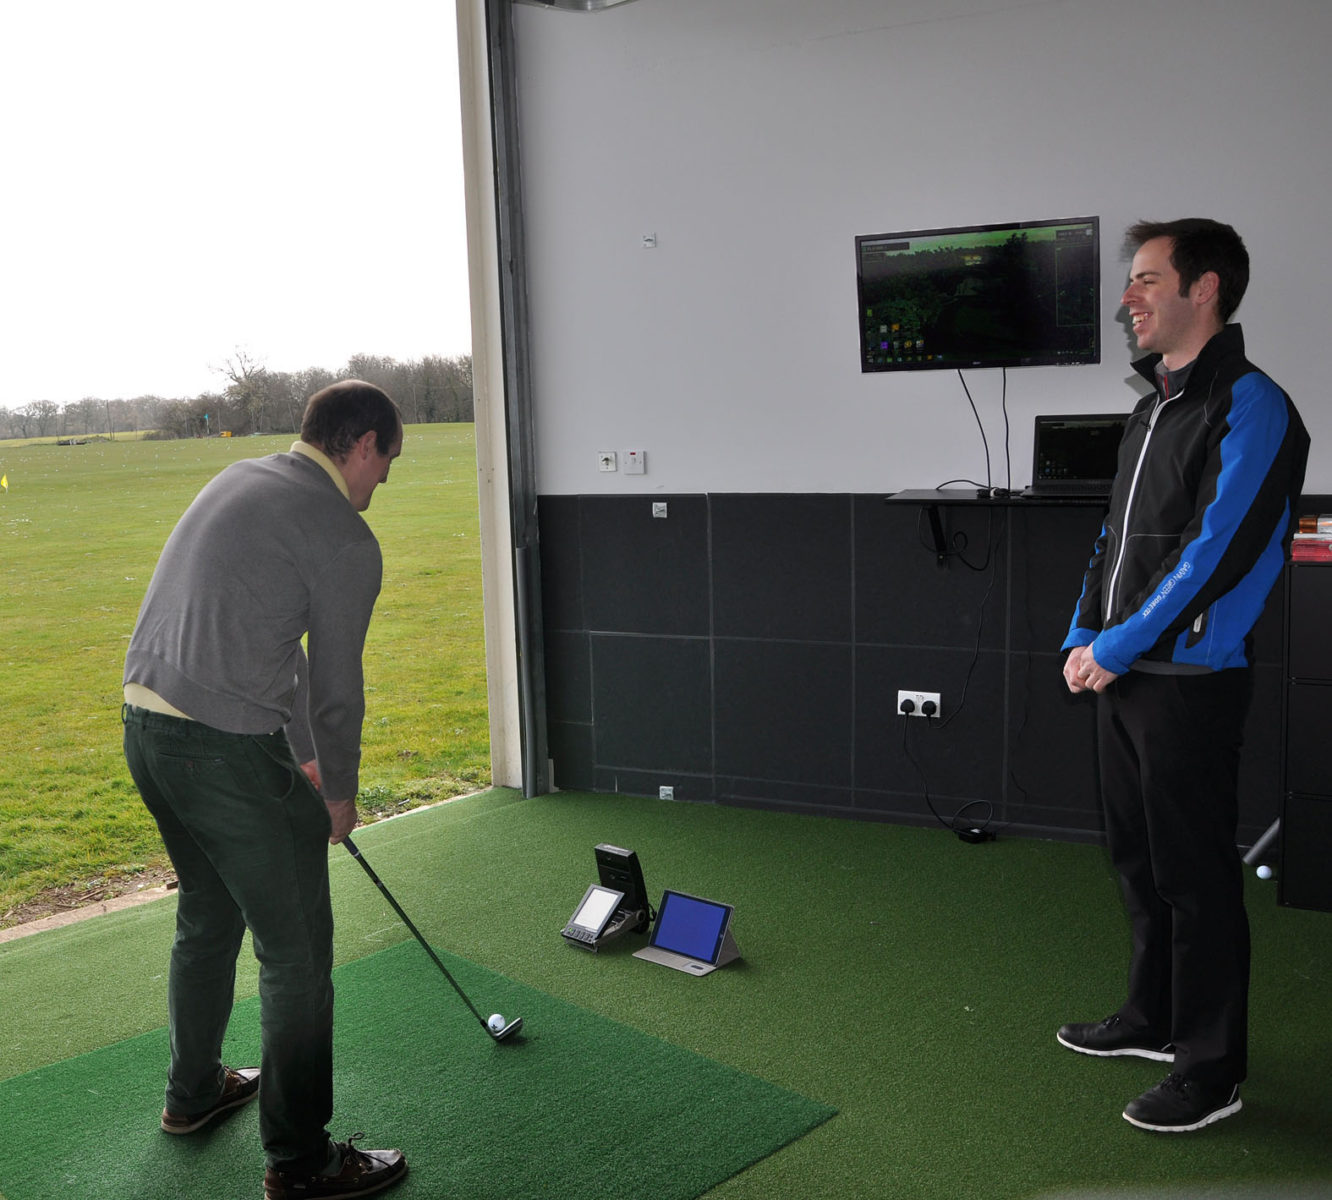 Parley Golf Centre's simulator is a huge success and golfers can now use it and see their balls go the full distance because it opens up to the driving range behind. Here, Parley Golf pro Andrew Warren coaches using the equipment.